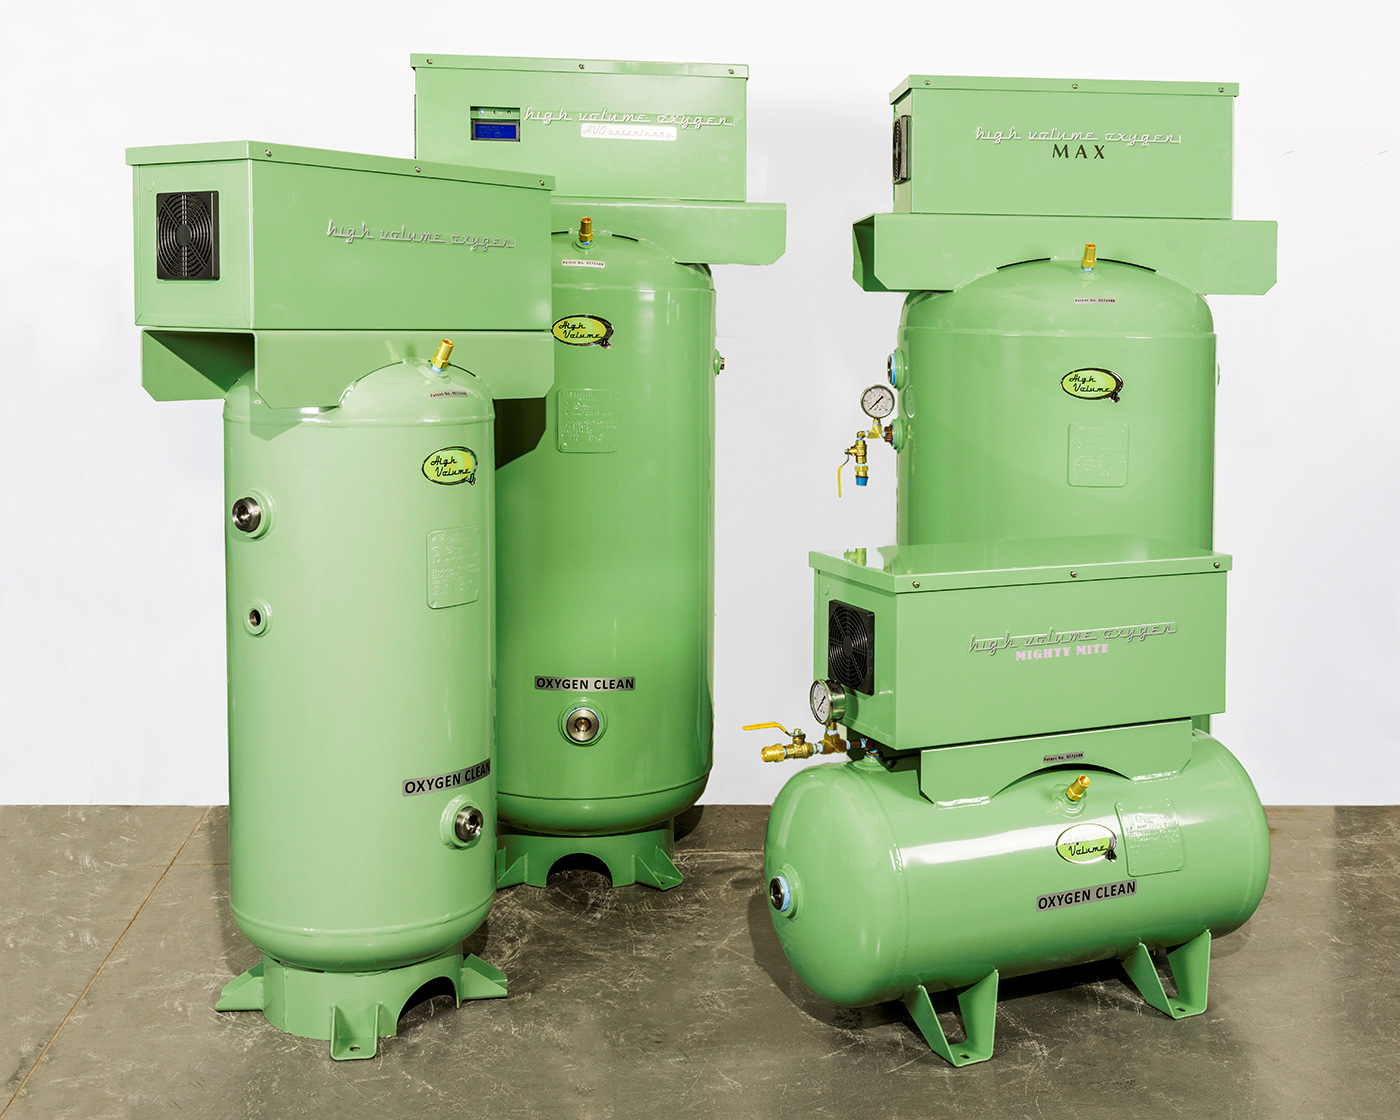 Various tank sizes include 20, 30, 60 and 80 gallon units